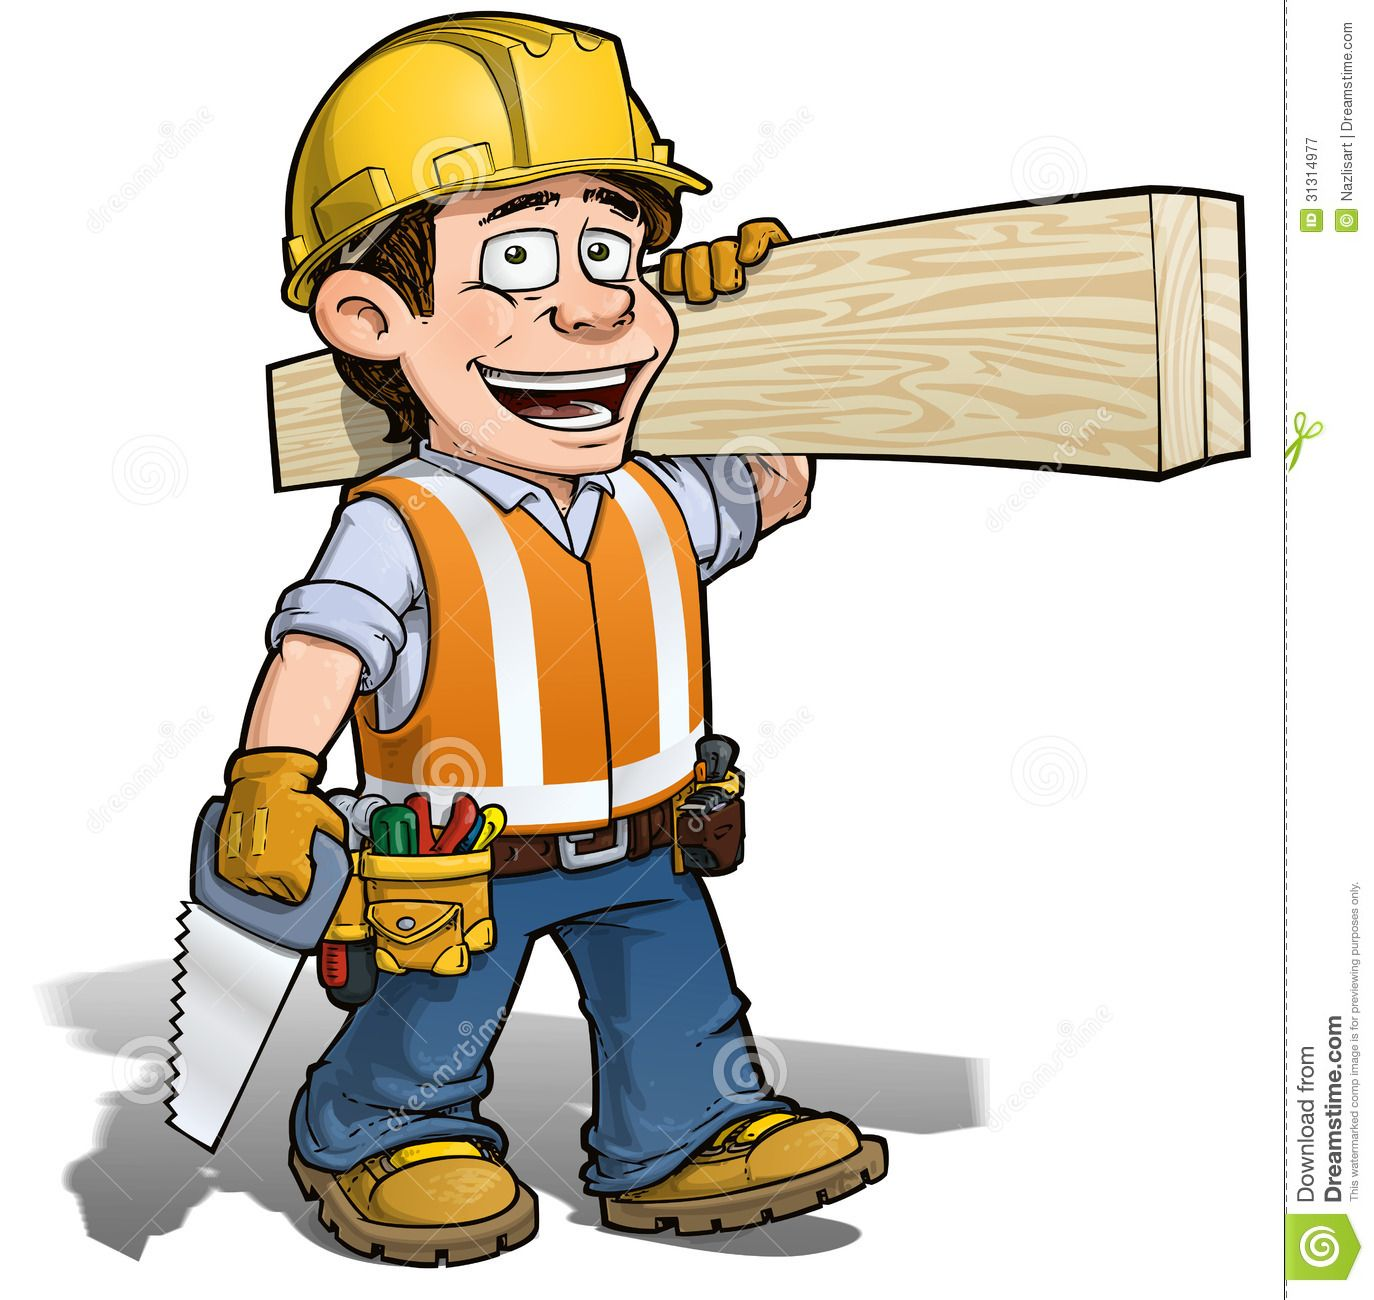 Carpentry clipart general contractor. Cartoon construction worker character